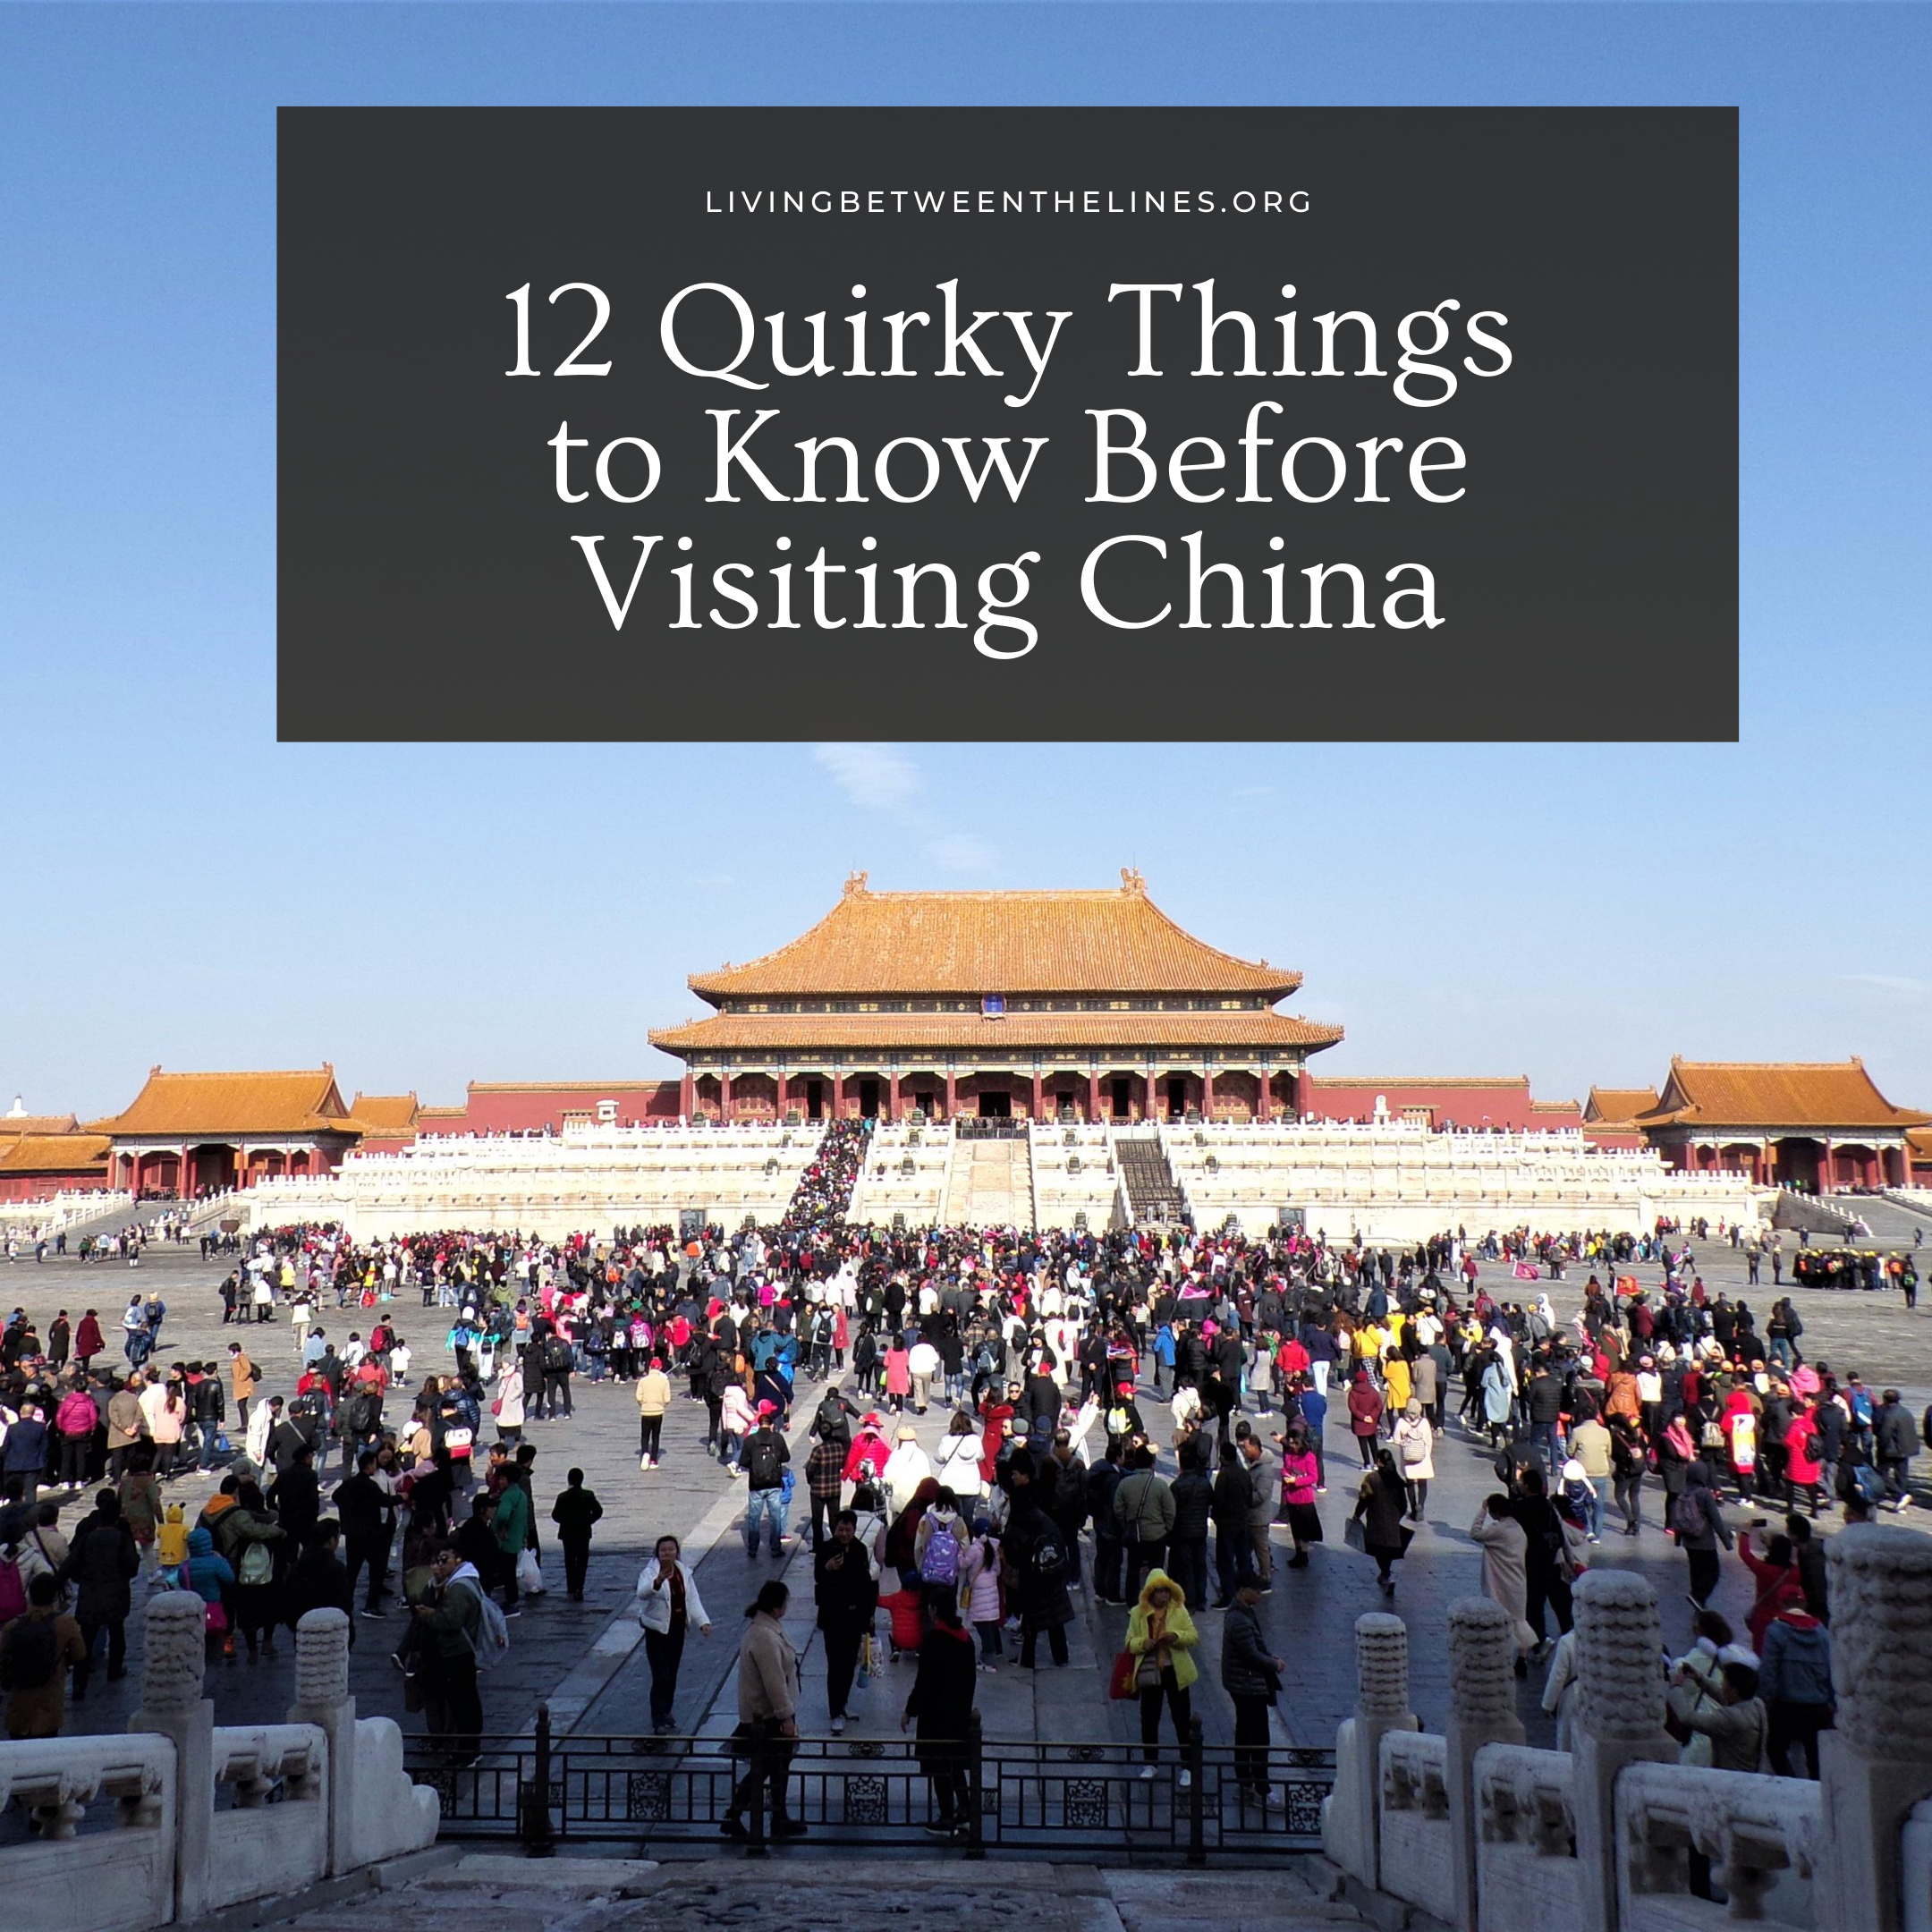 12 Quirky Things to Know Before Visiting China